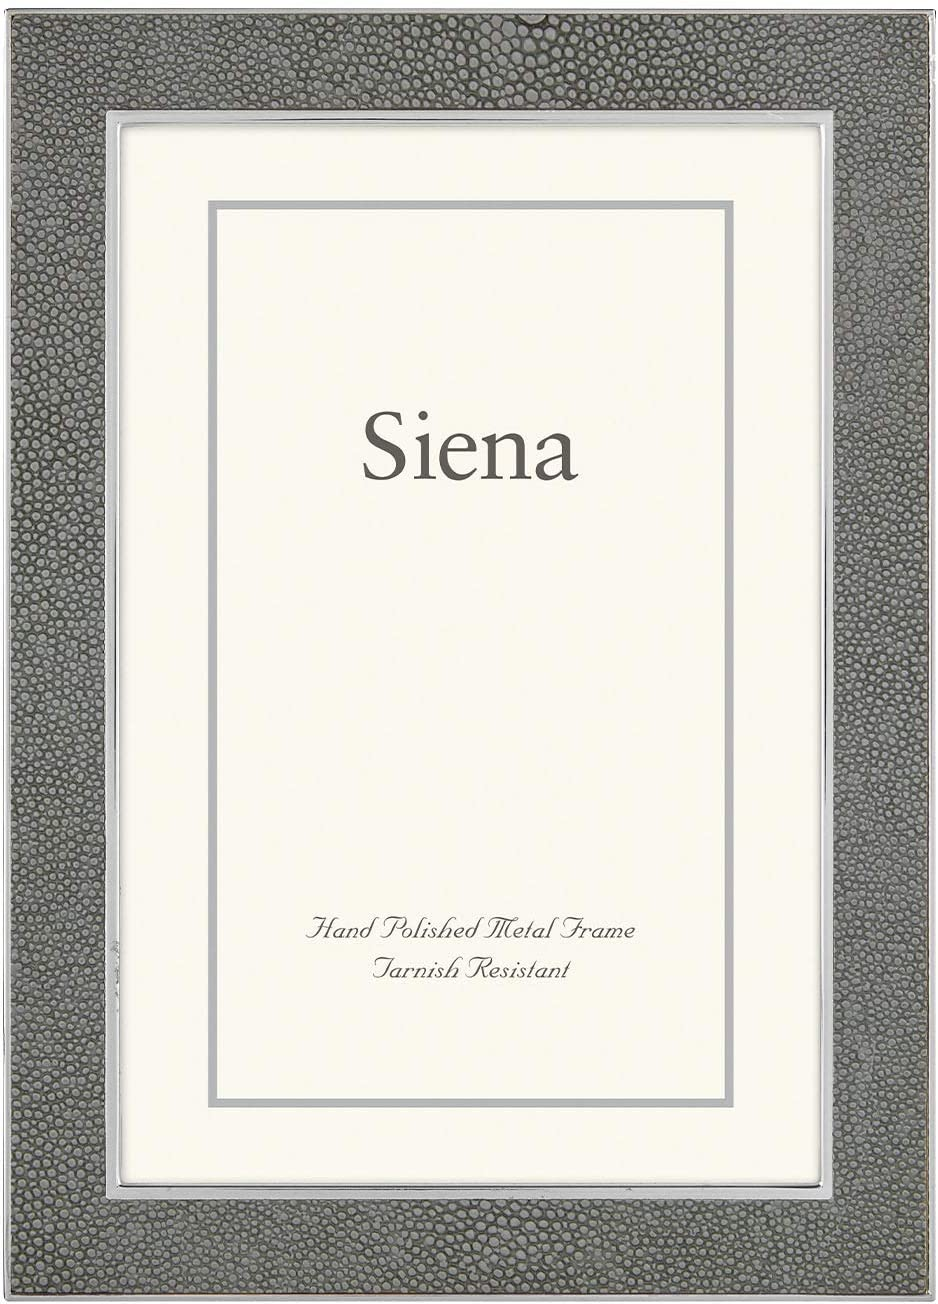 Siena 5x7 Tarnish Resistant Silver Metal Picture Frame with Faux Shagreen, Fashionable Design & Velvet Easel Back, Boutique Quality Photo Frame (Grey)